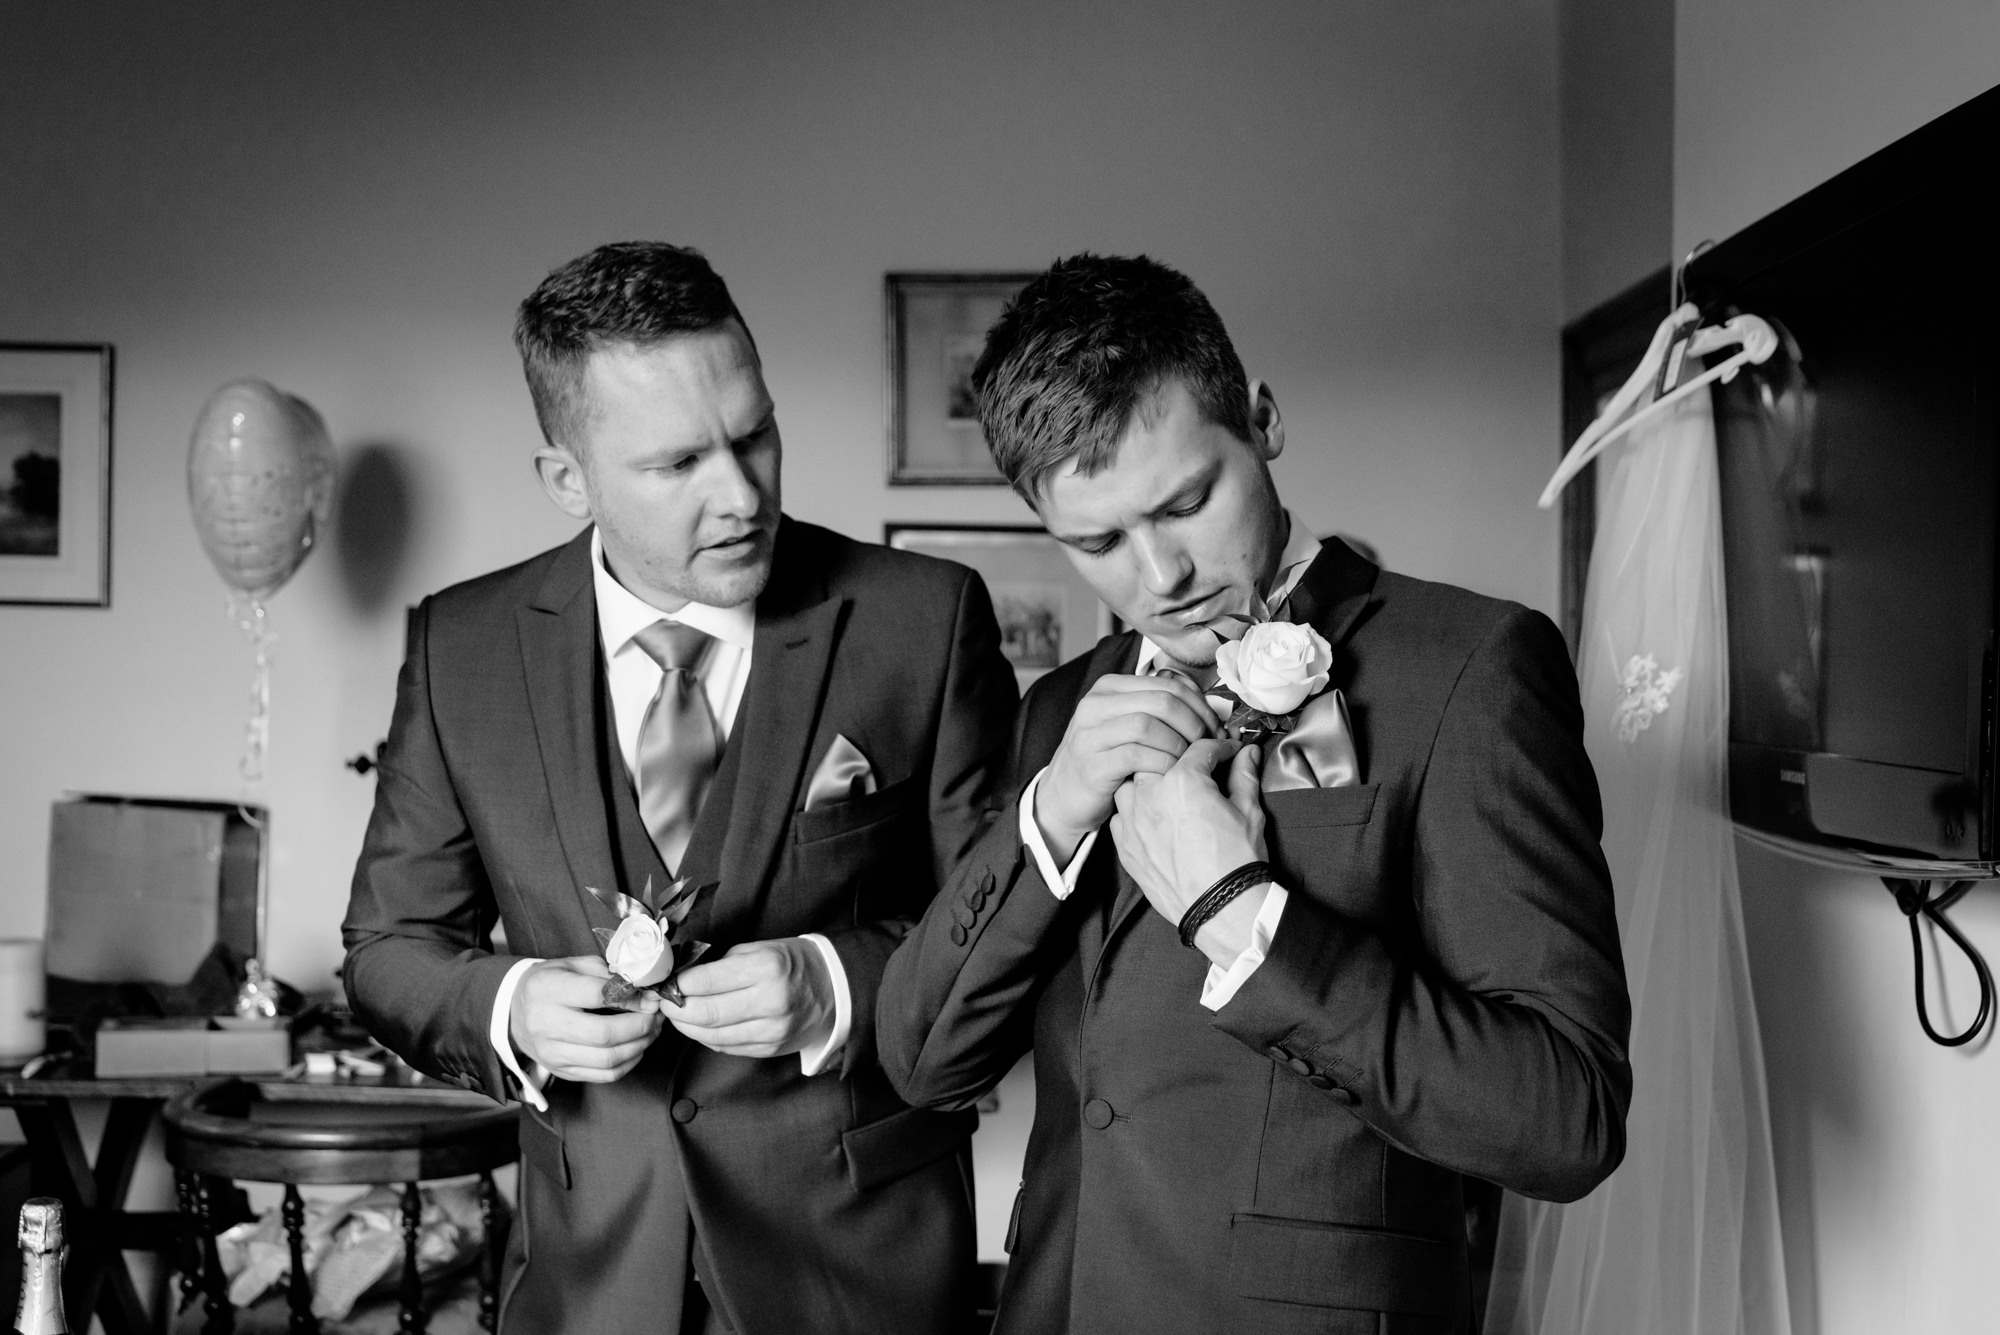 Groomsmen putting on the buttonhole flower